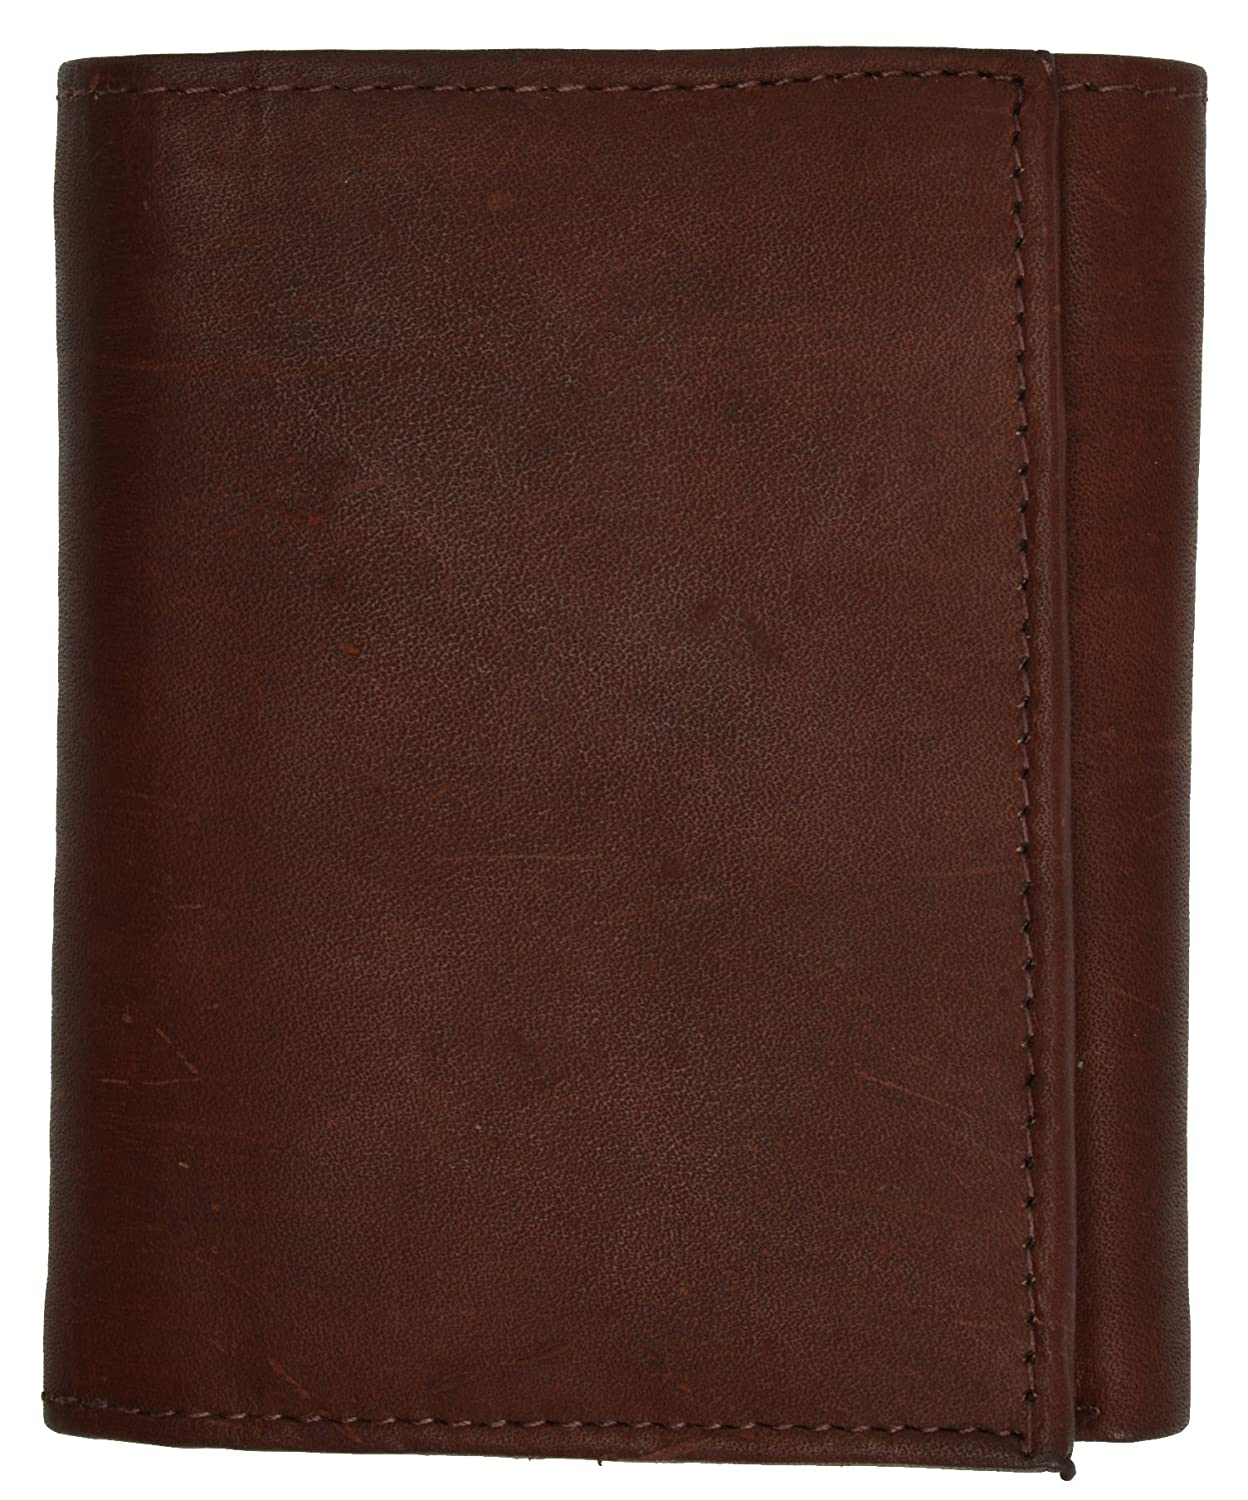 Cowhide Leather Extra Capacity Trifold Wallet with Detachable ID Flap by Marshal